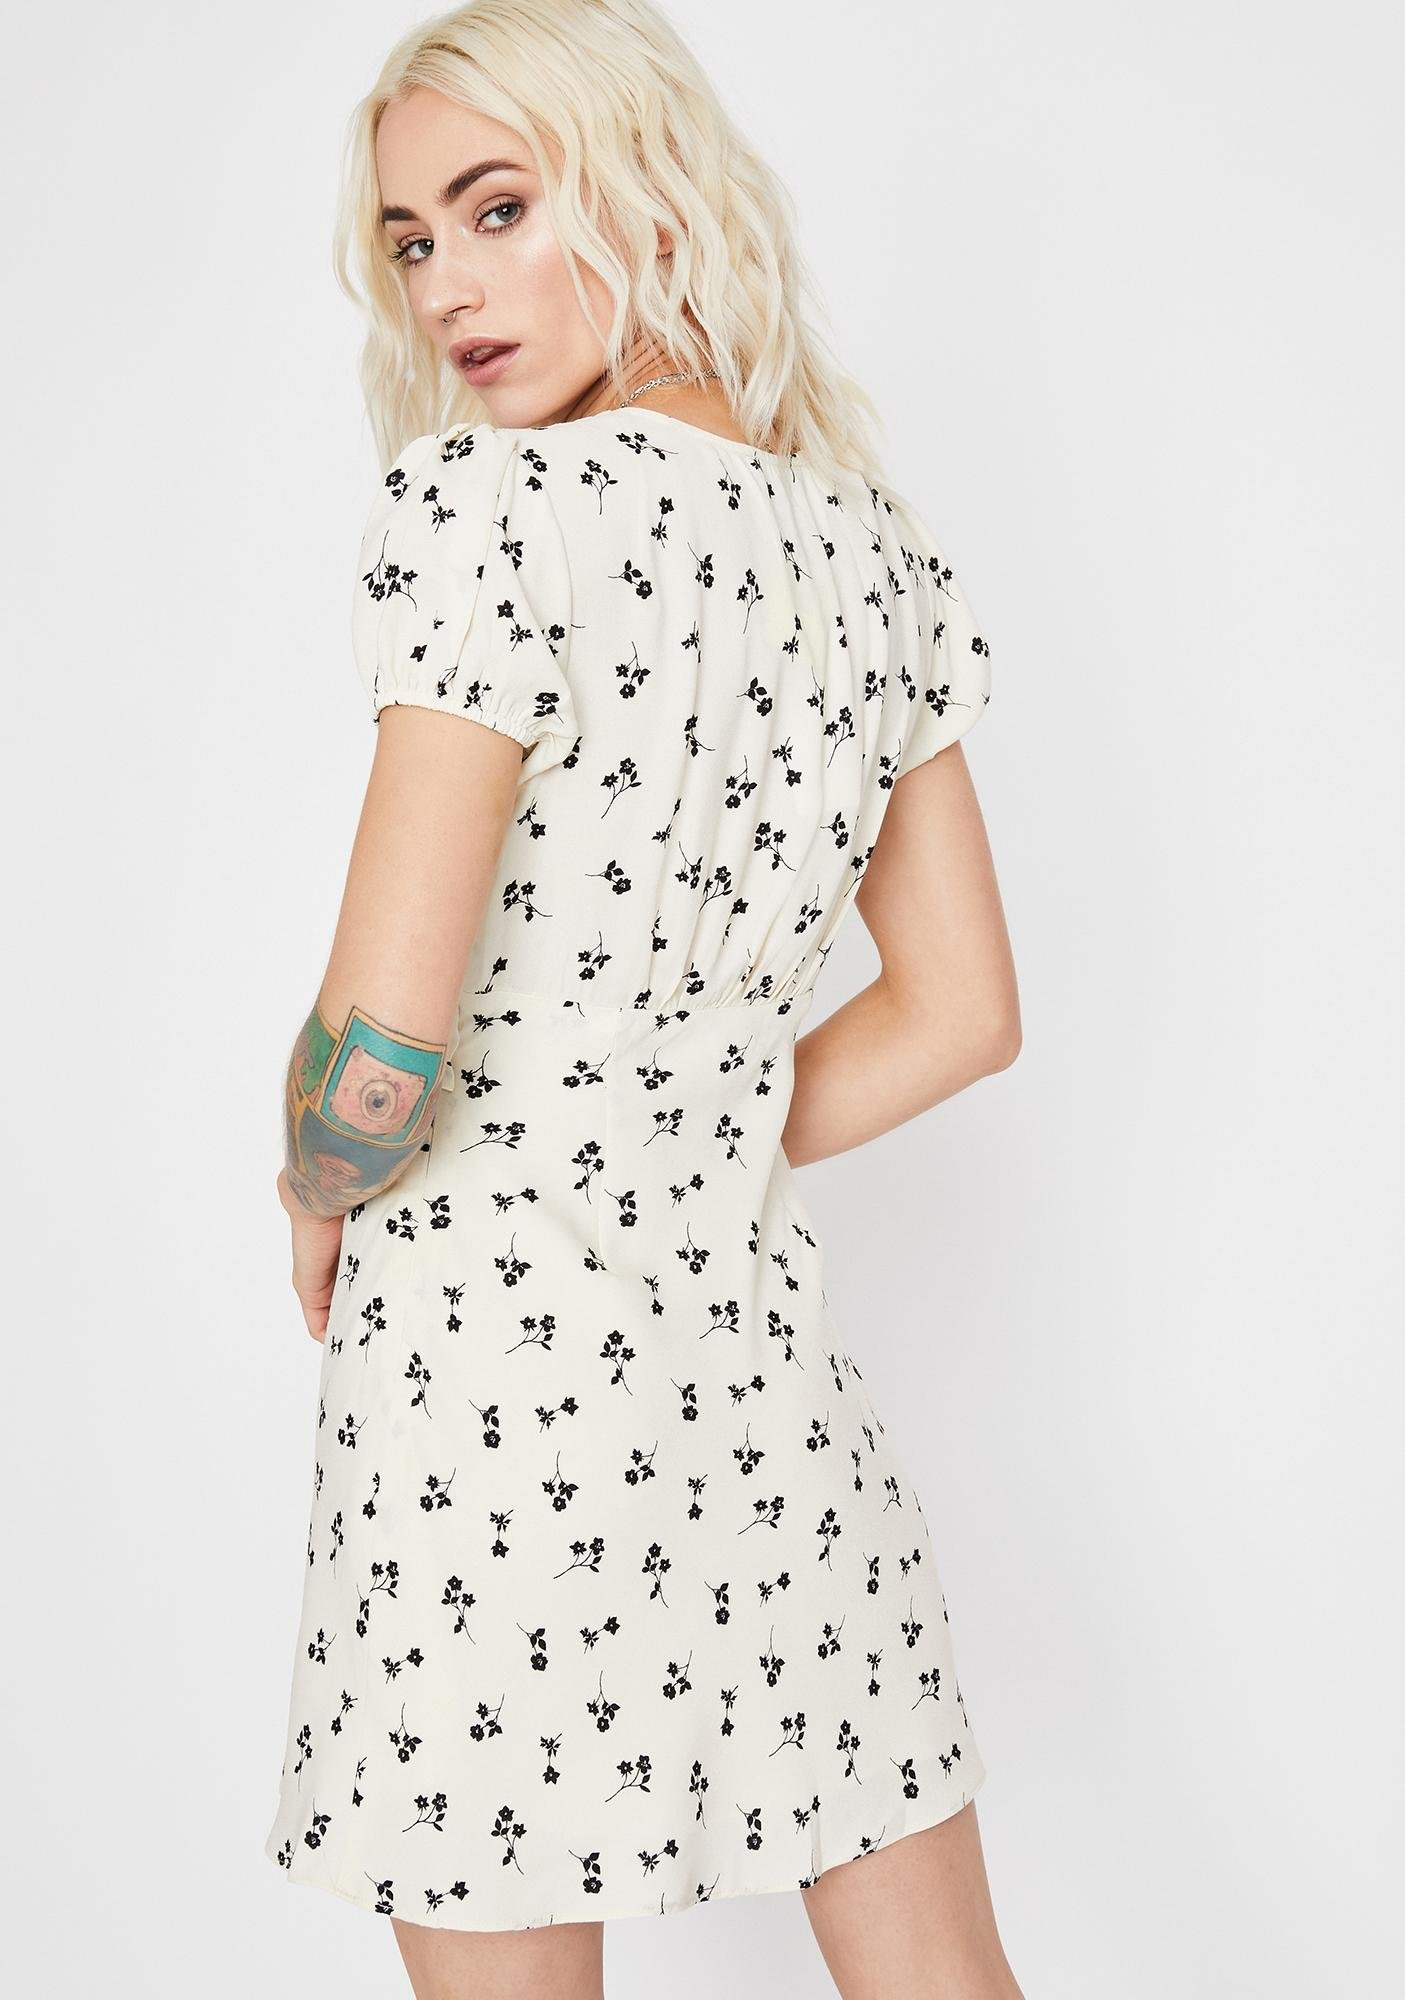 Pure Pushin' Posies Floral Dress